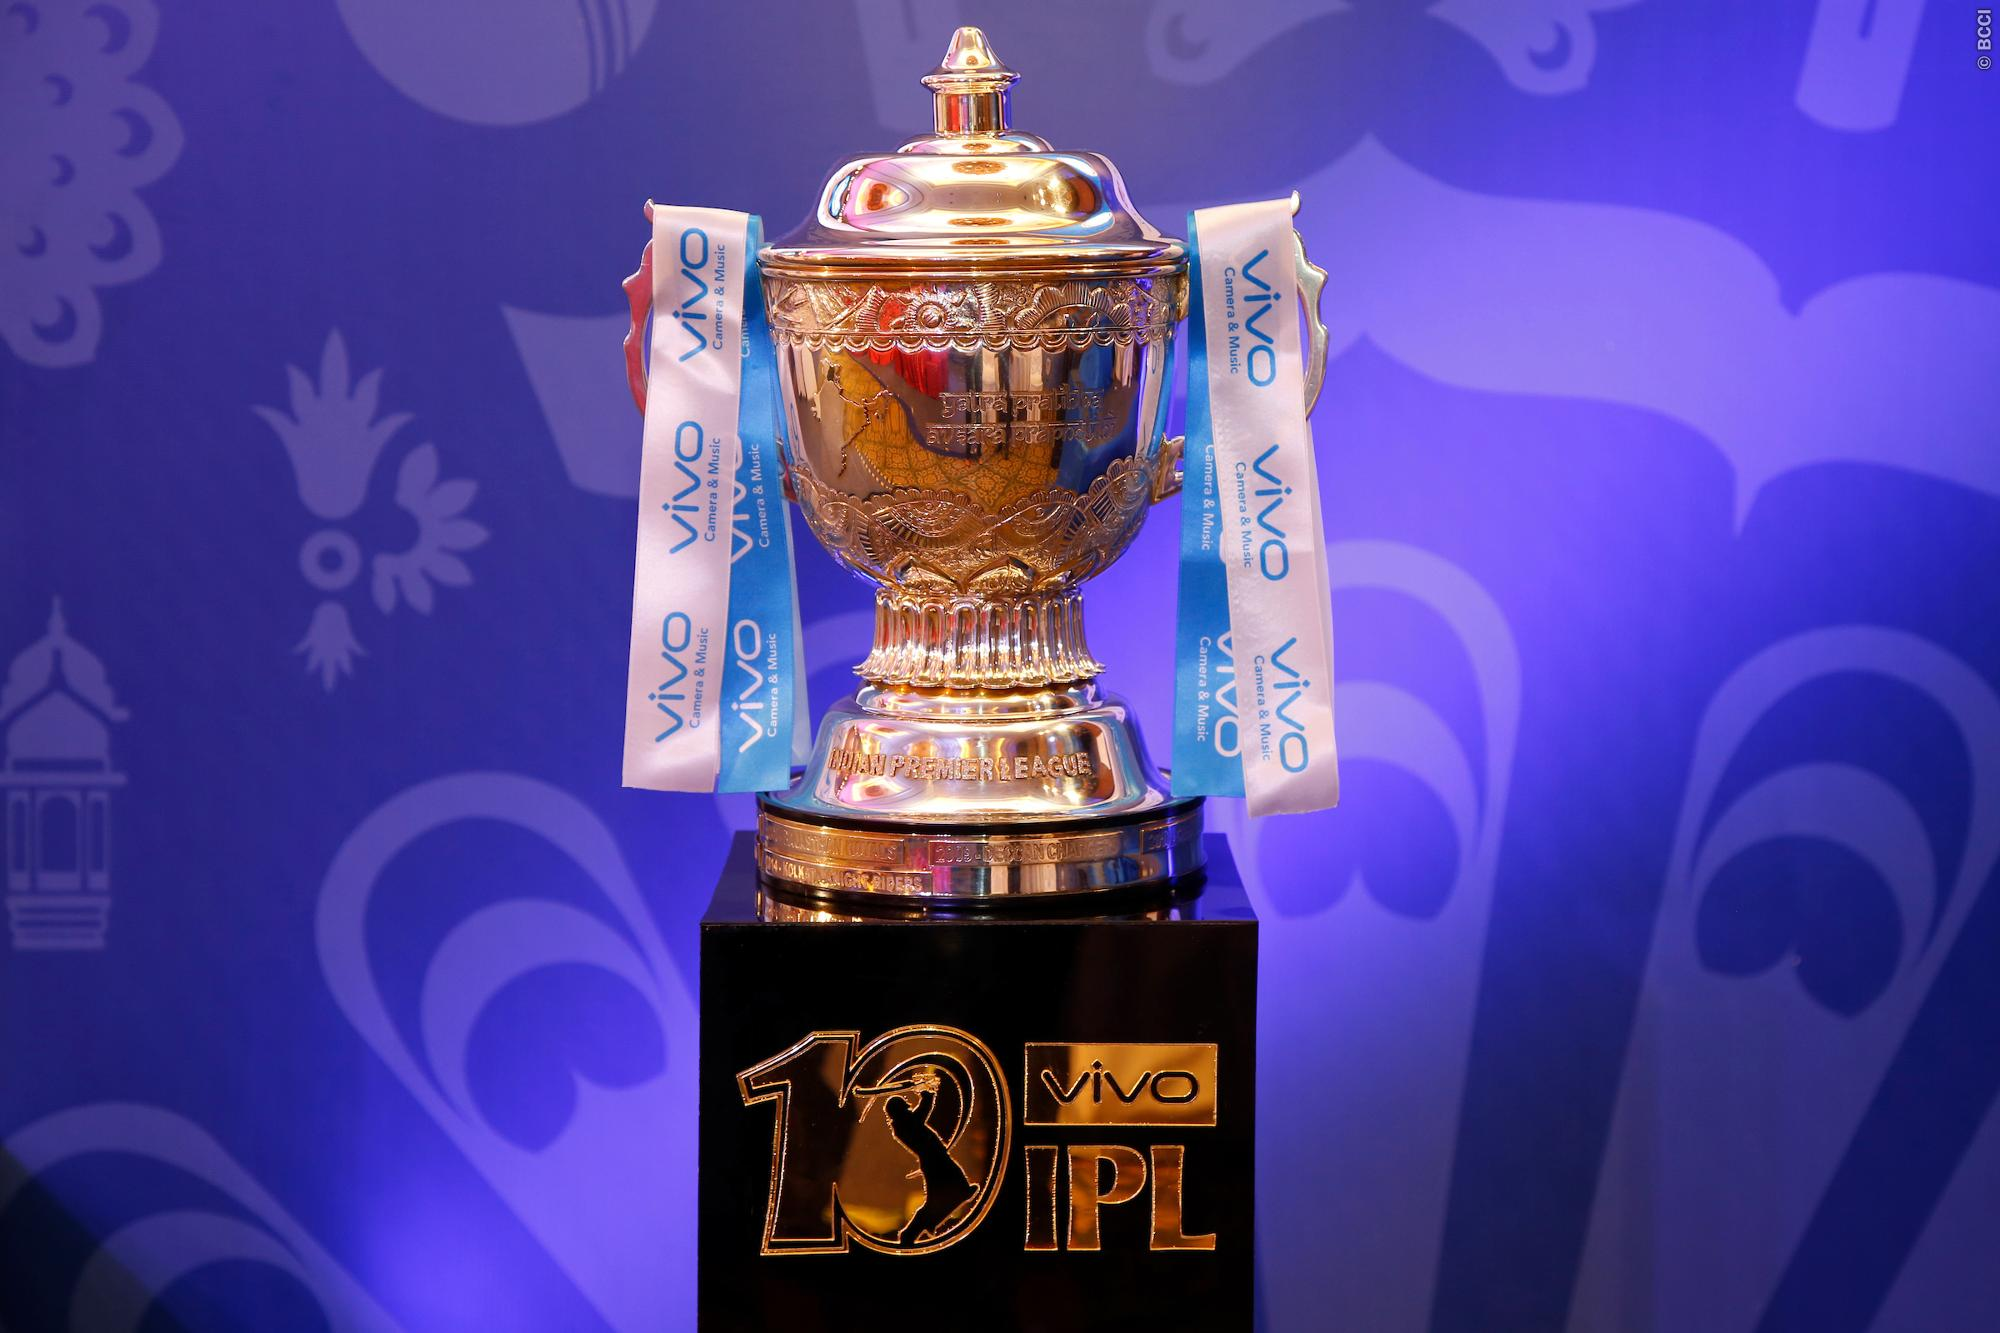 The Indian Premier League 2019 auction will take place on Dec 18 in Jaipur